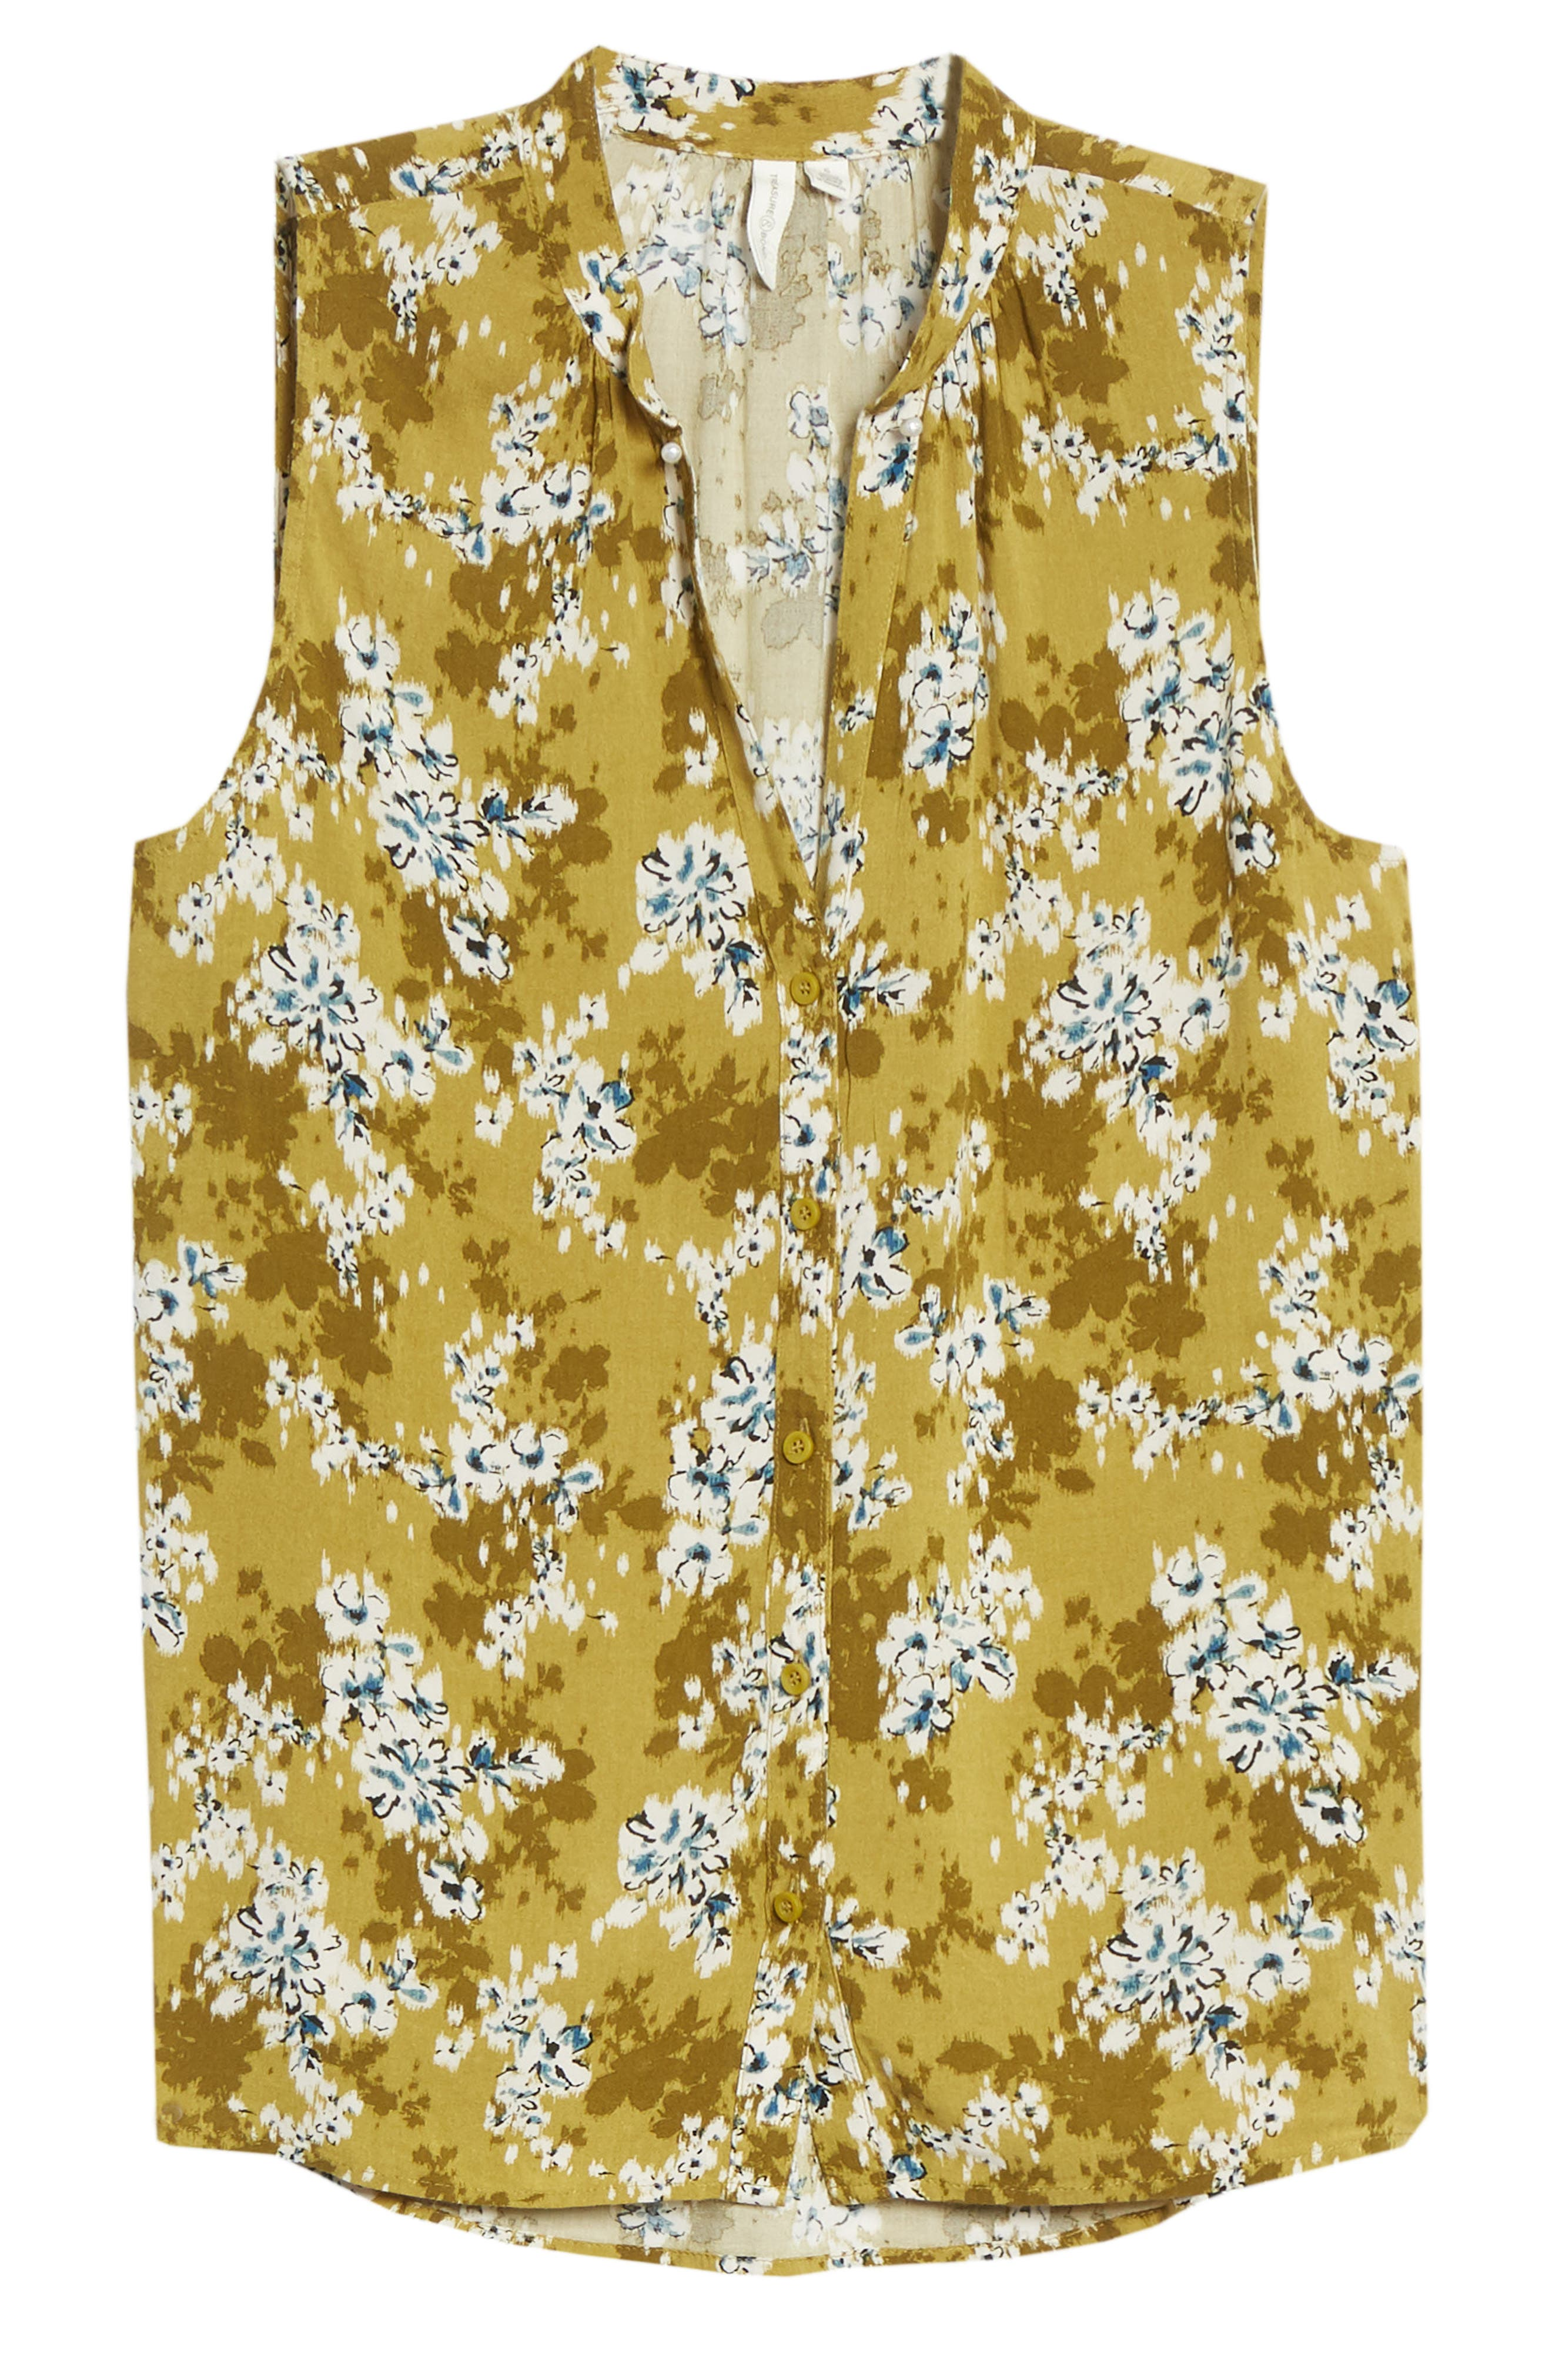 An ikat-inspired floral pattern blooms on an airy woven top that\\\'s a sunny style standby. When you buy Treasure & Bond, Nordstrom will donate 2.5% of net sales to organizations that work to empower youth. Style Name: Treasure & Bond Floral Print Sleeveless Shirt. Style Number: 5984980. Available in stores.